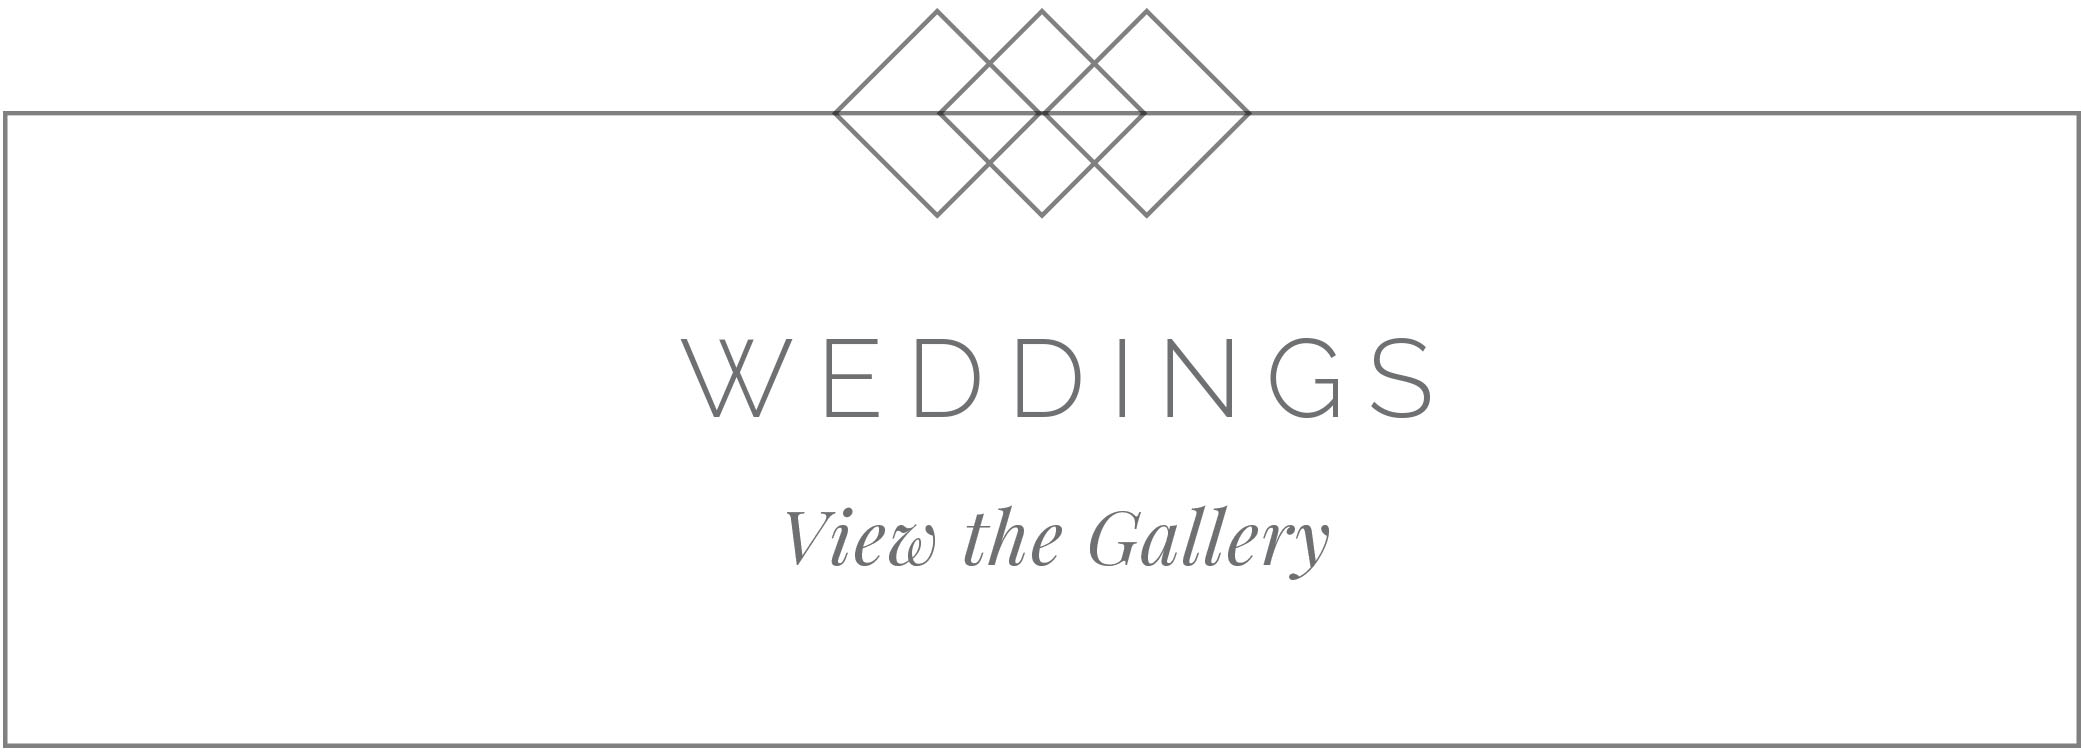 weddinggallerybutton.jpg